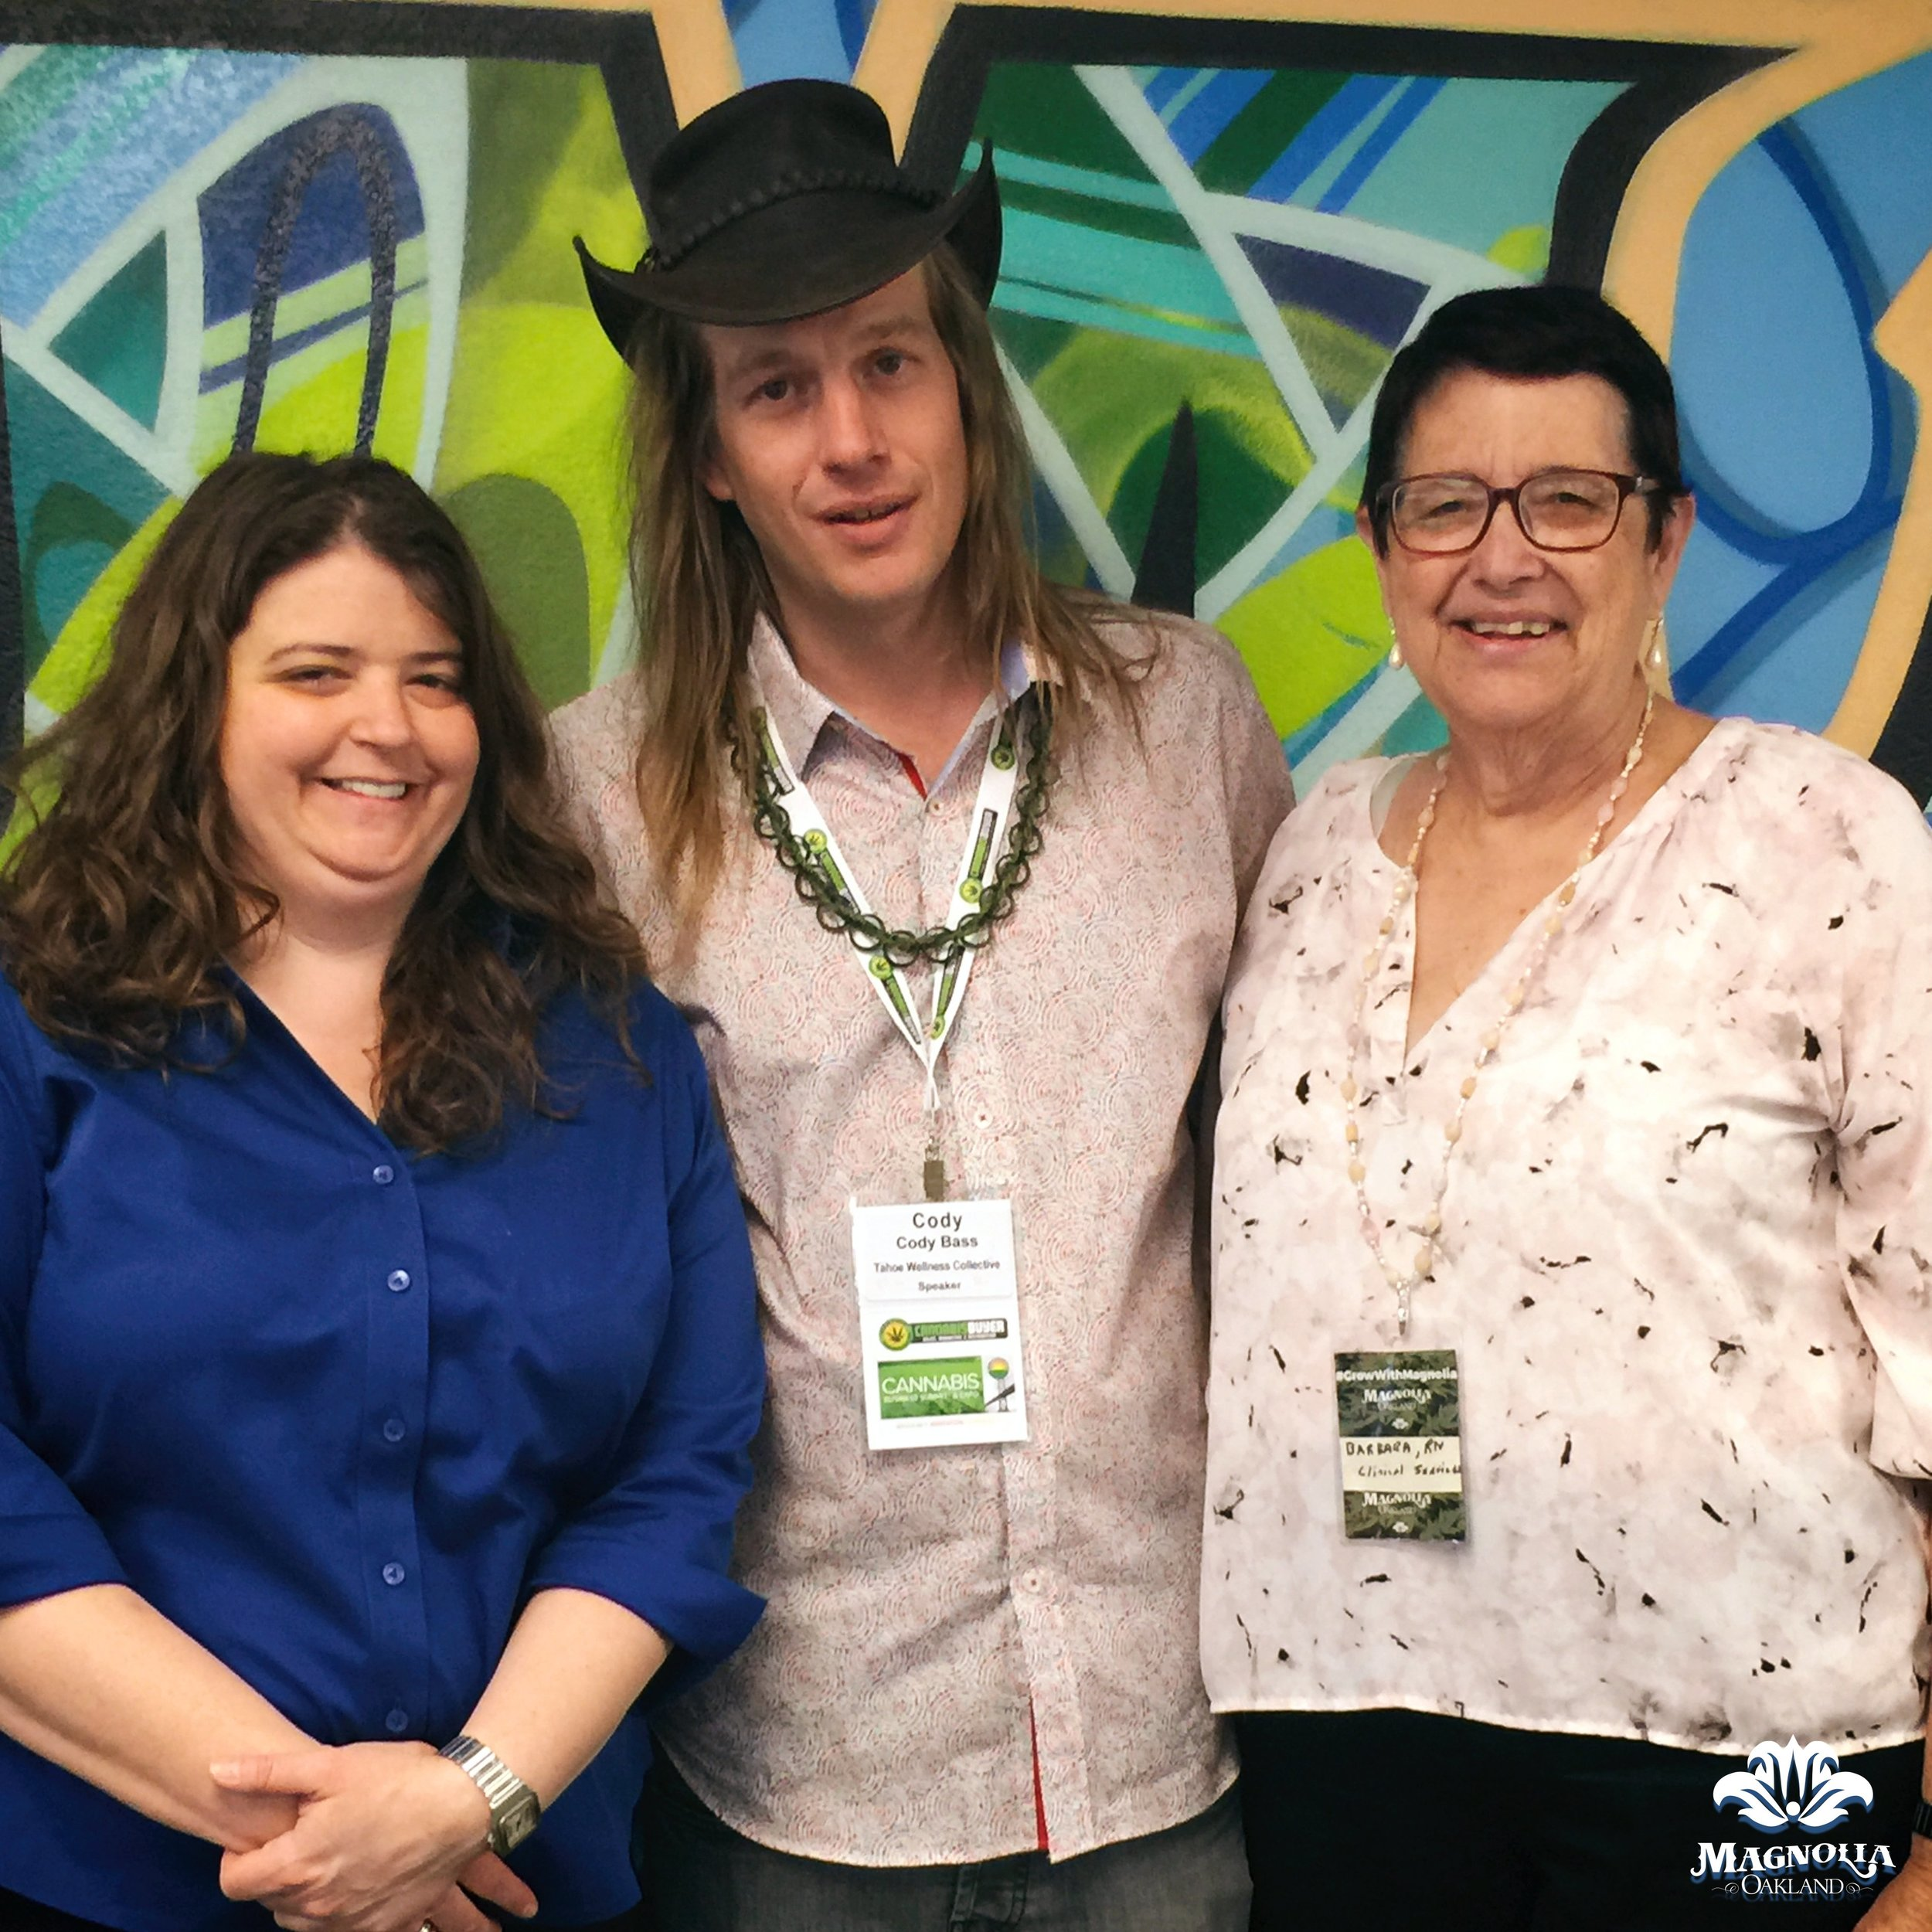 Tahoe Wellness Cooperative  founder Cody Bass took a tour of  Magnolia  today as part of his visit to Oakland for the NCIA  Cannabis Business Summit & Expo . Pictured from left to right: Liana Held, founder of  Liana Ltd ; Cody Bass; and, Barbara Blaser, Magnolia's Director of Clinical Wellness.